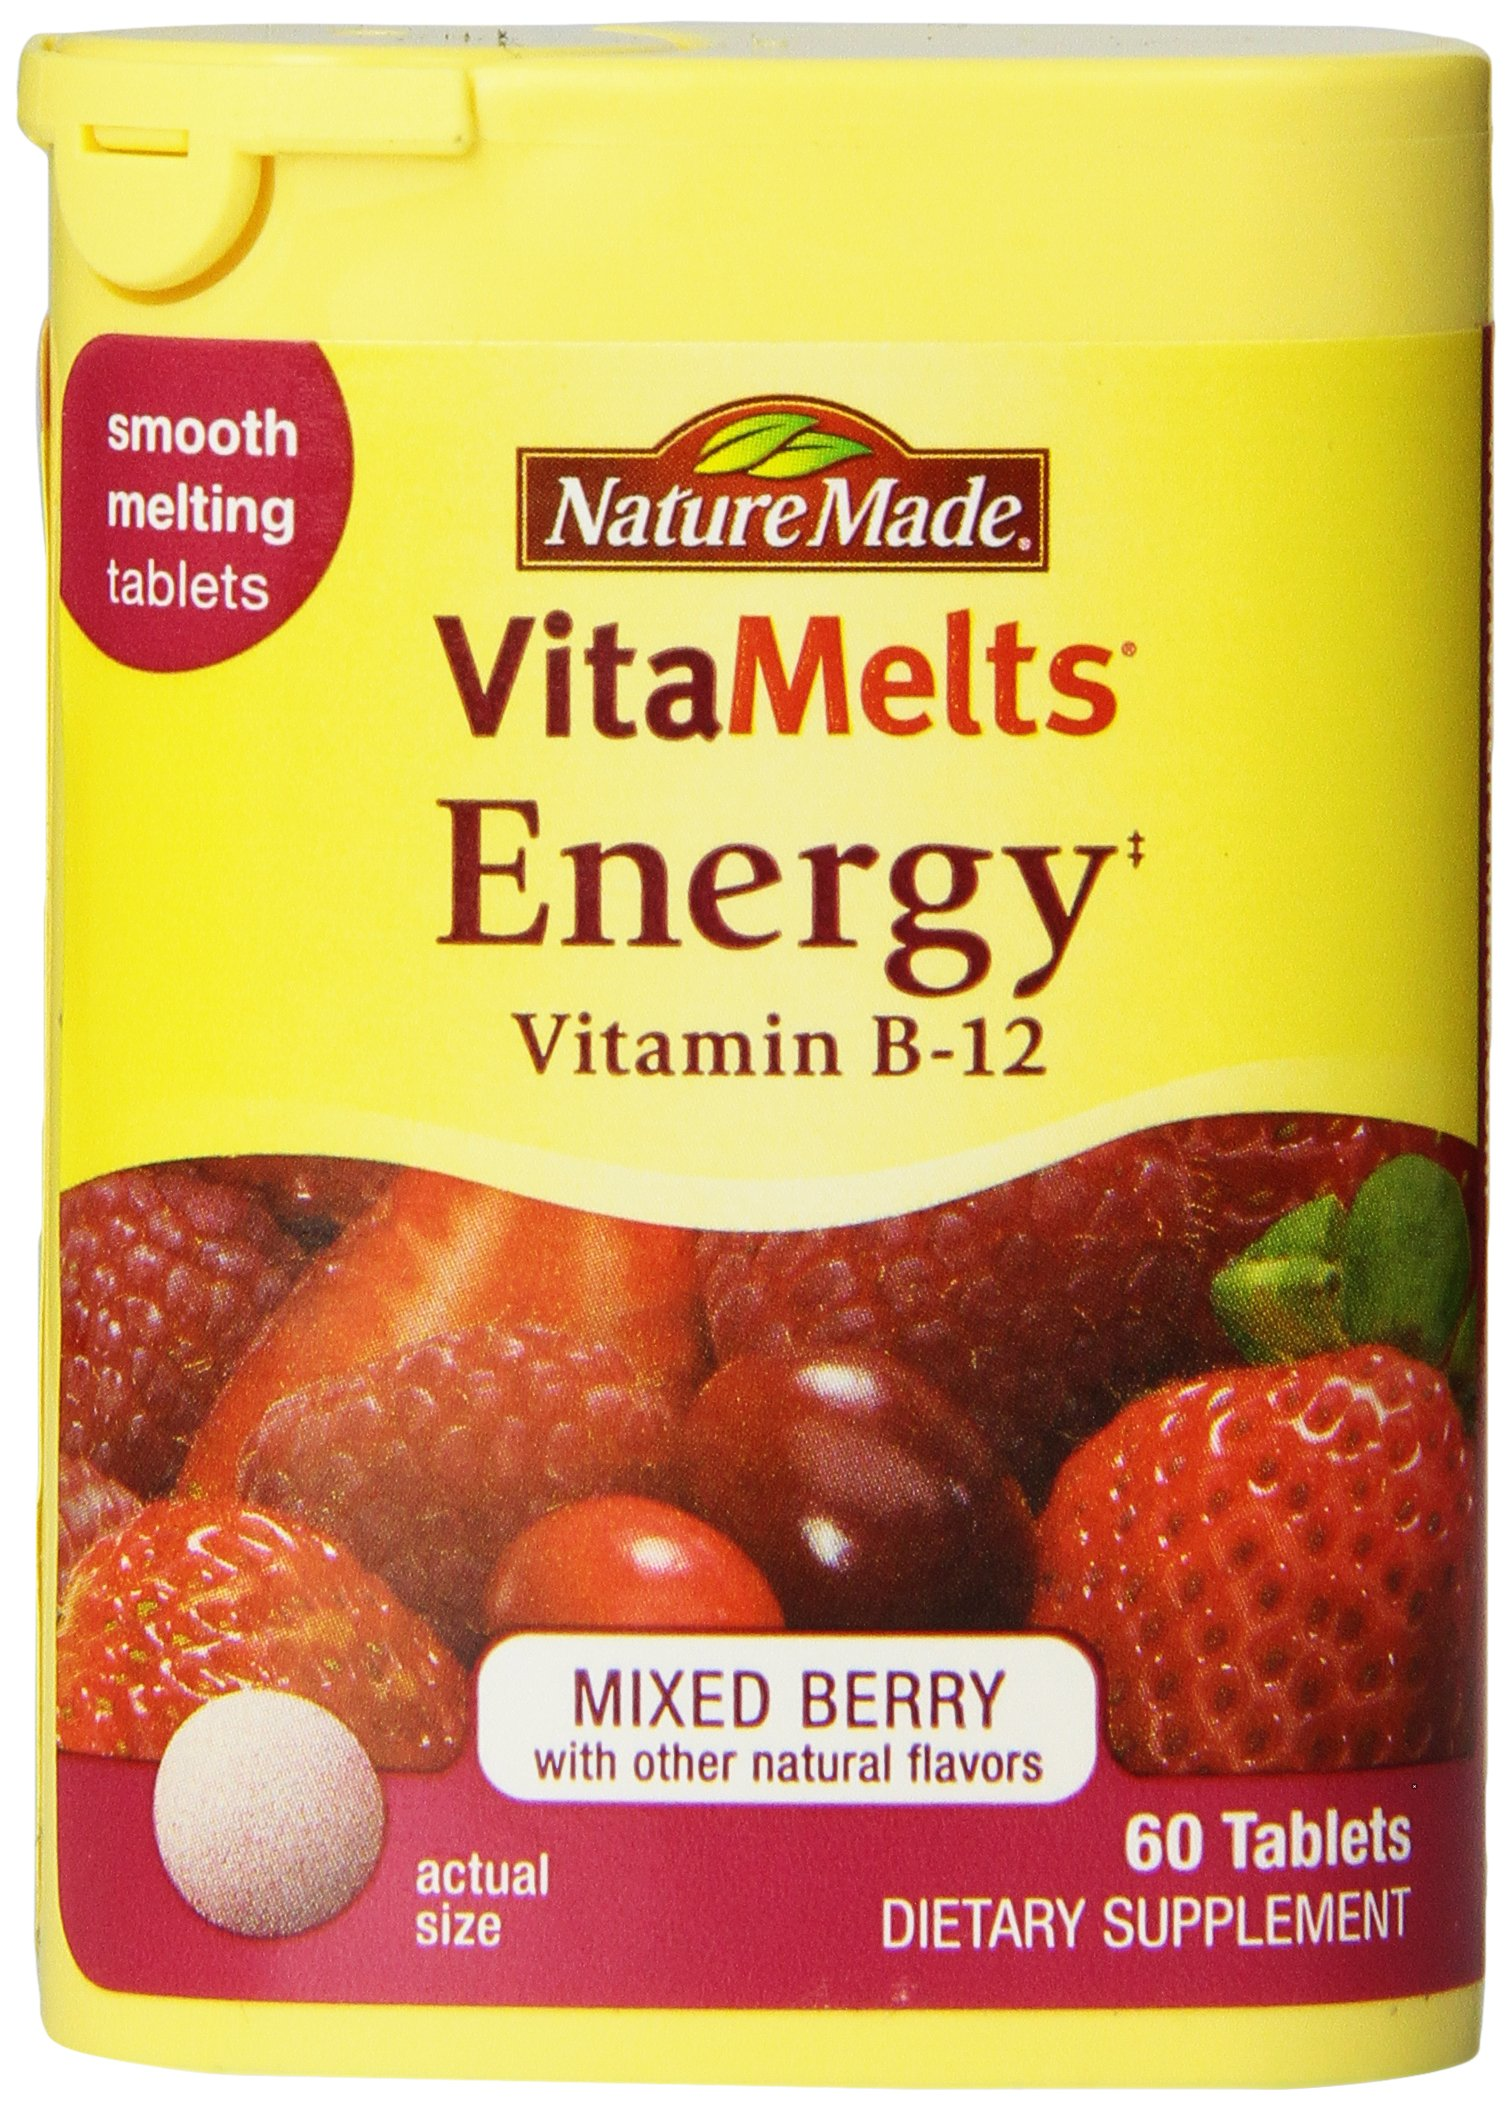 Nature Made Vitamelts 1500 Mcg Smooth Dissolve Tablet, Vitamin B-12, 60 Count